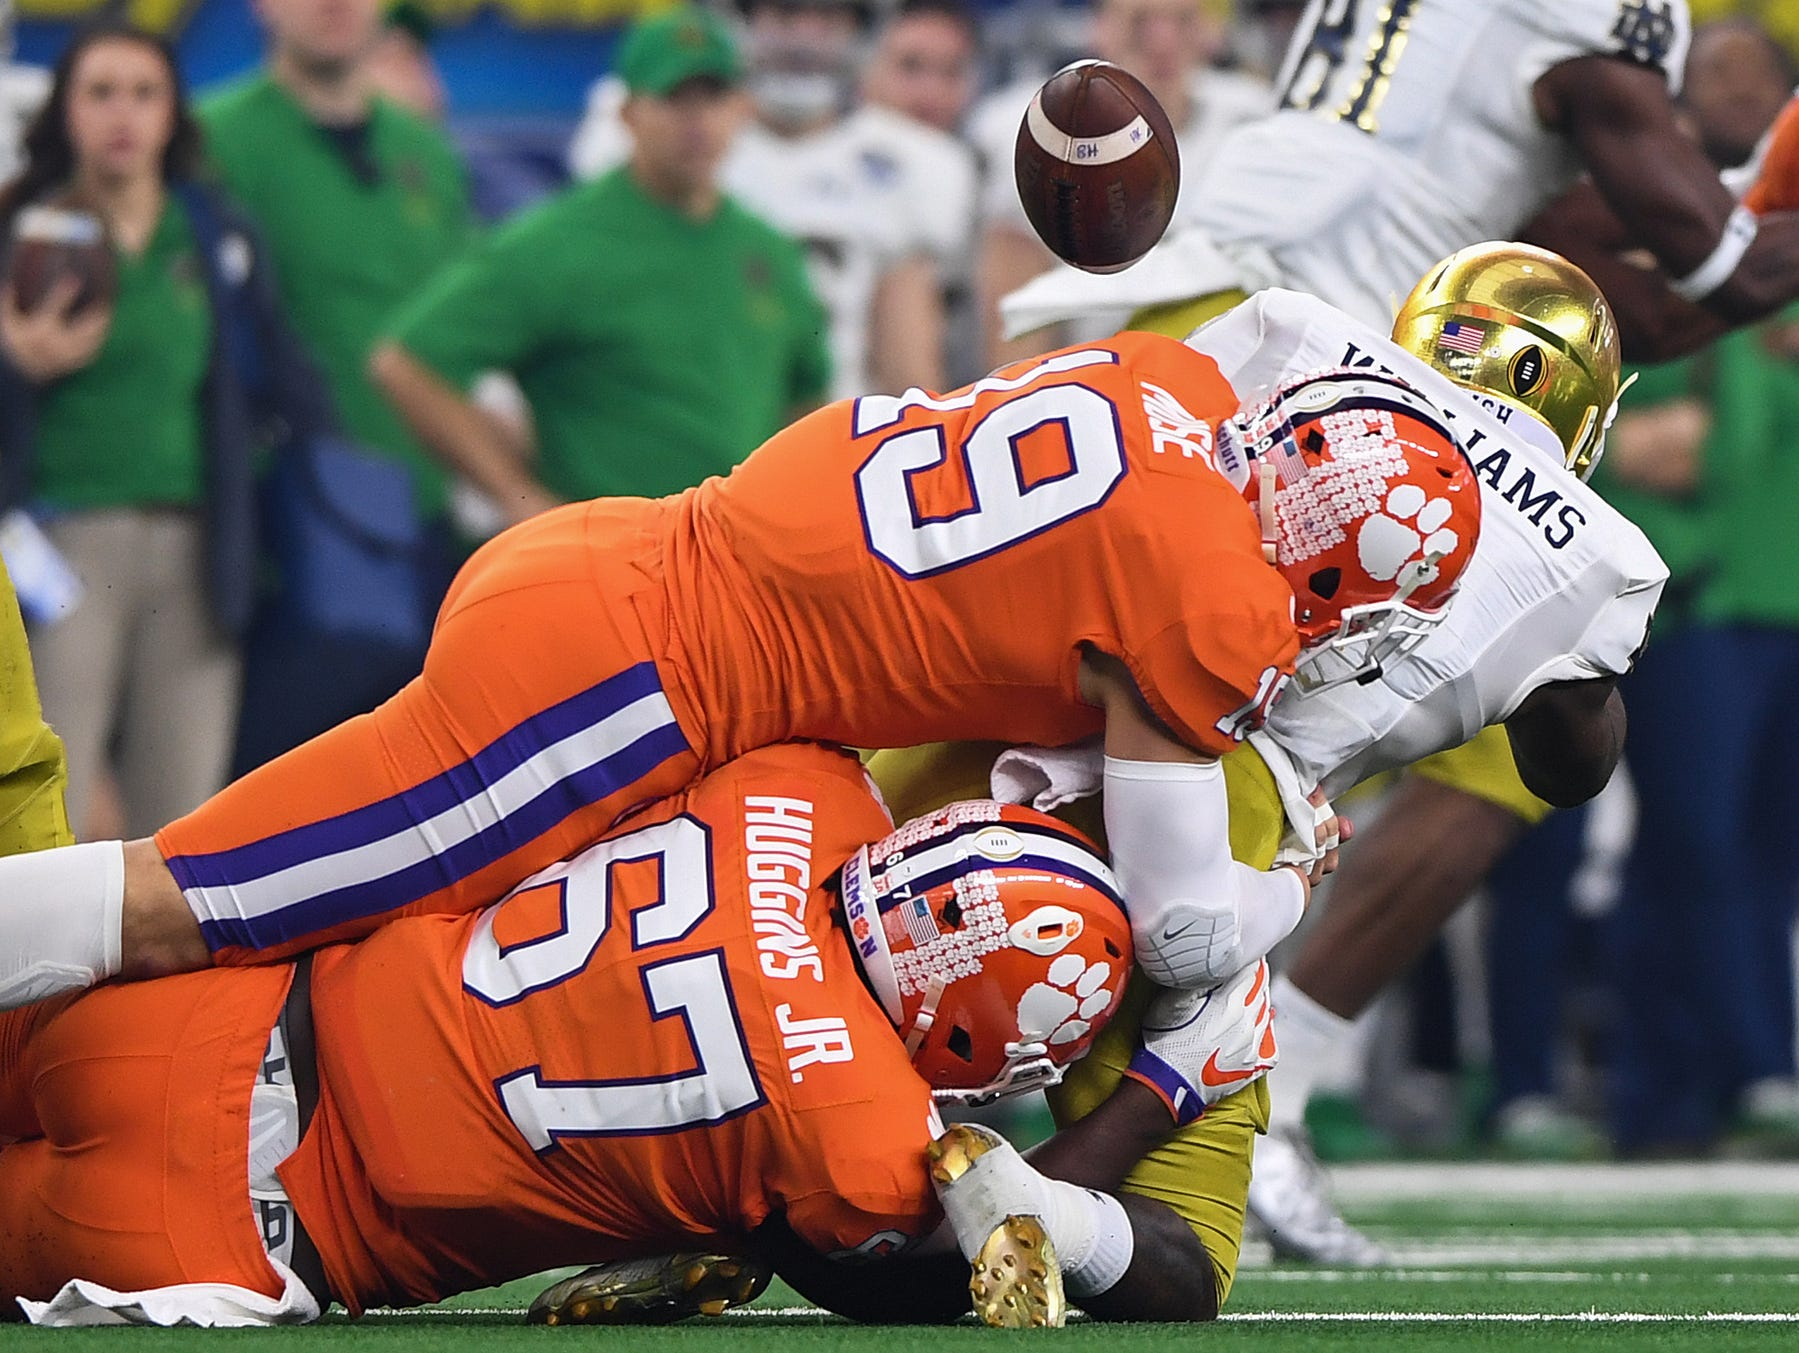 Clemson defensive back Tanner Muse (19) and defensive lineman Albert Huggins (67) bring down Notre Dame running back Dexter Williams (2) during the 1st quarter of the Goodyear Cotton Bowl at AT&T stadium in Arlington, Texas on Saturday.